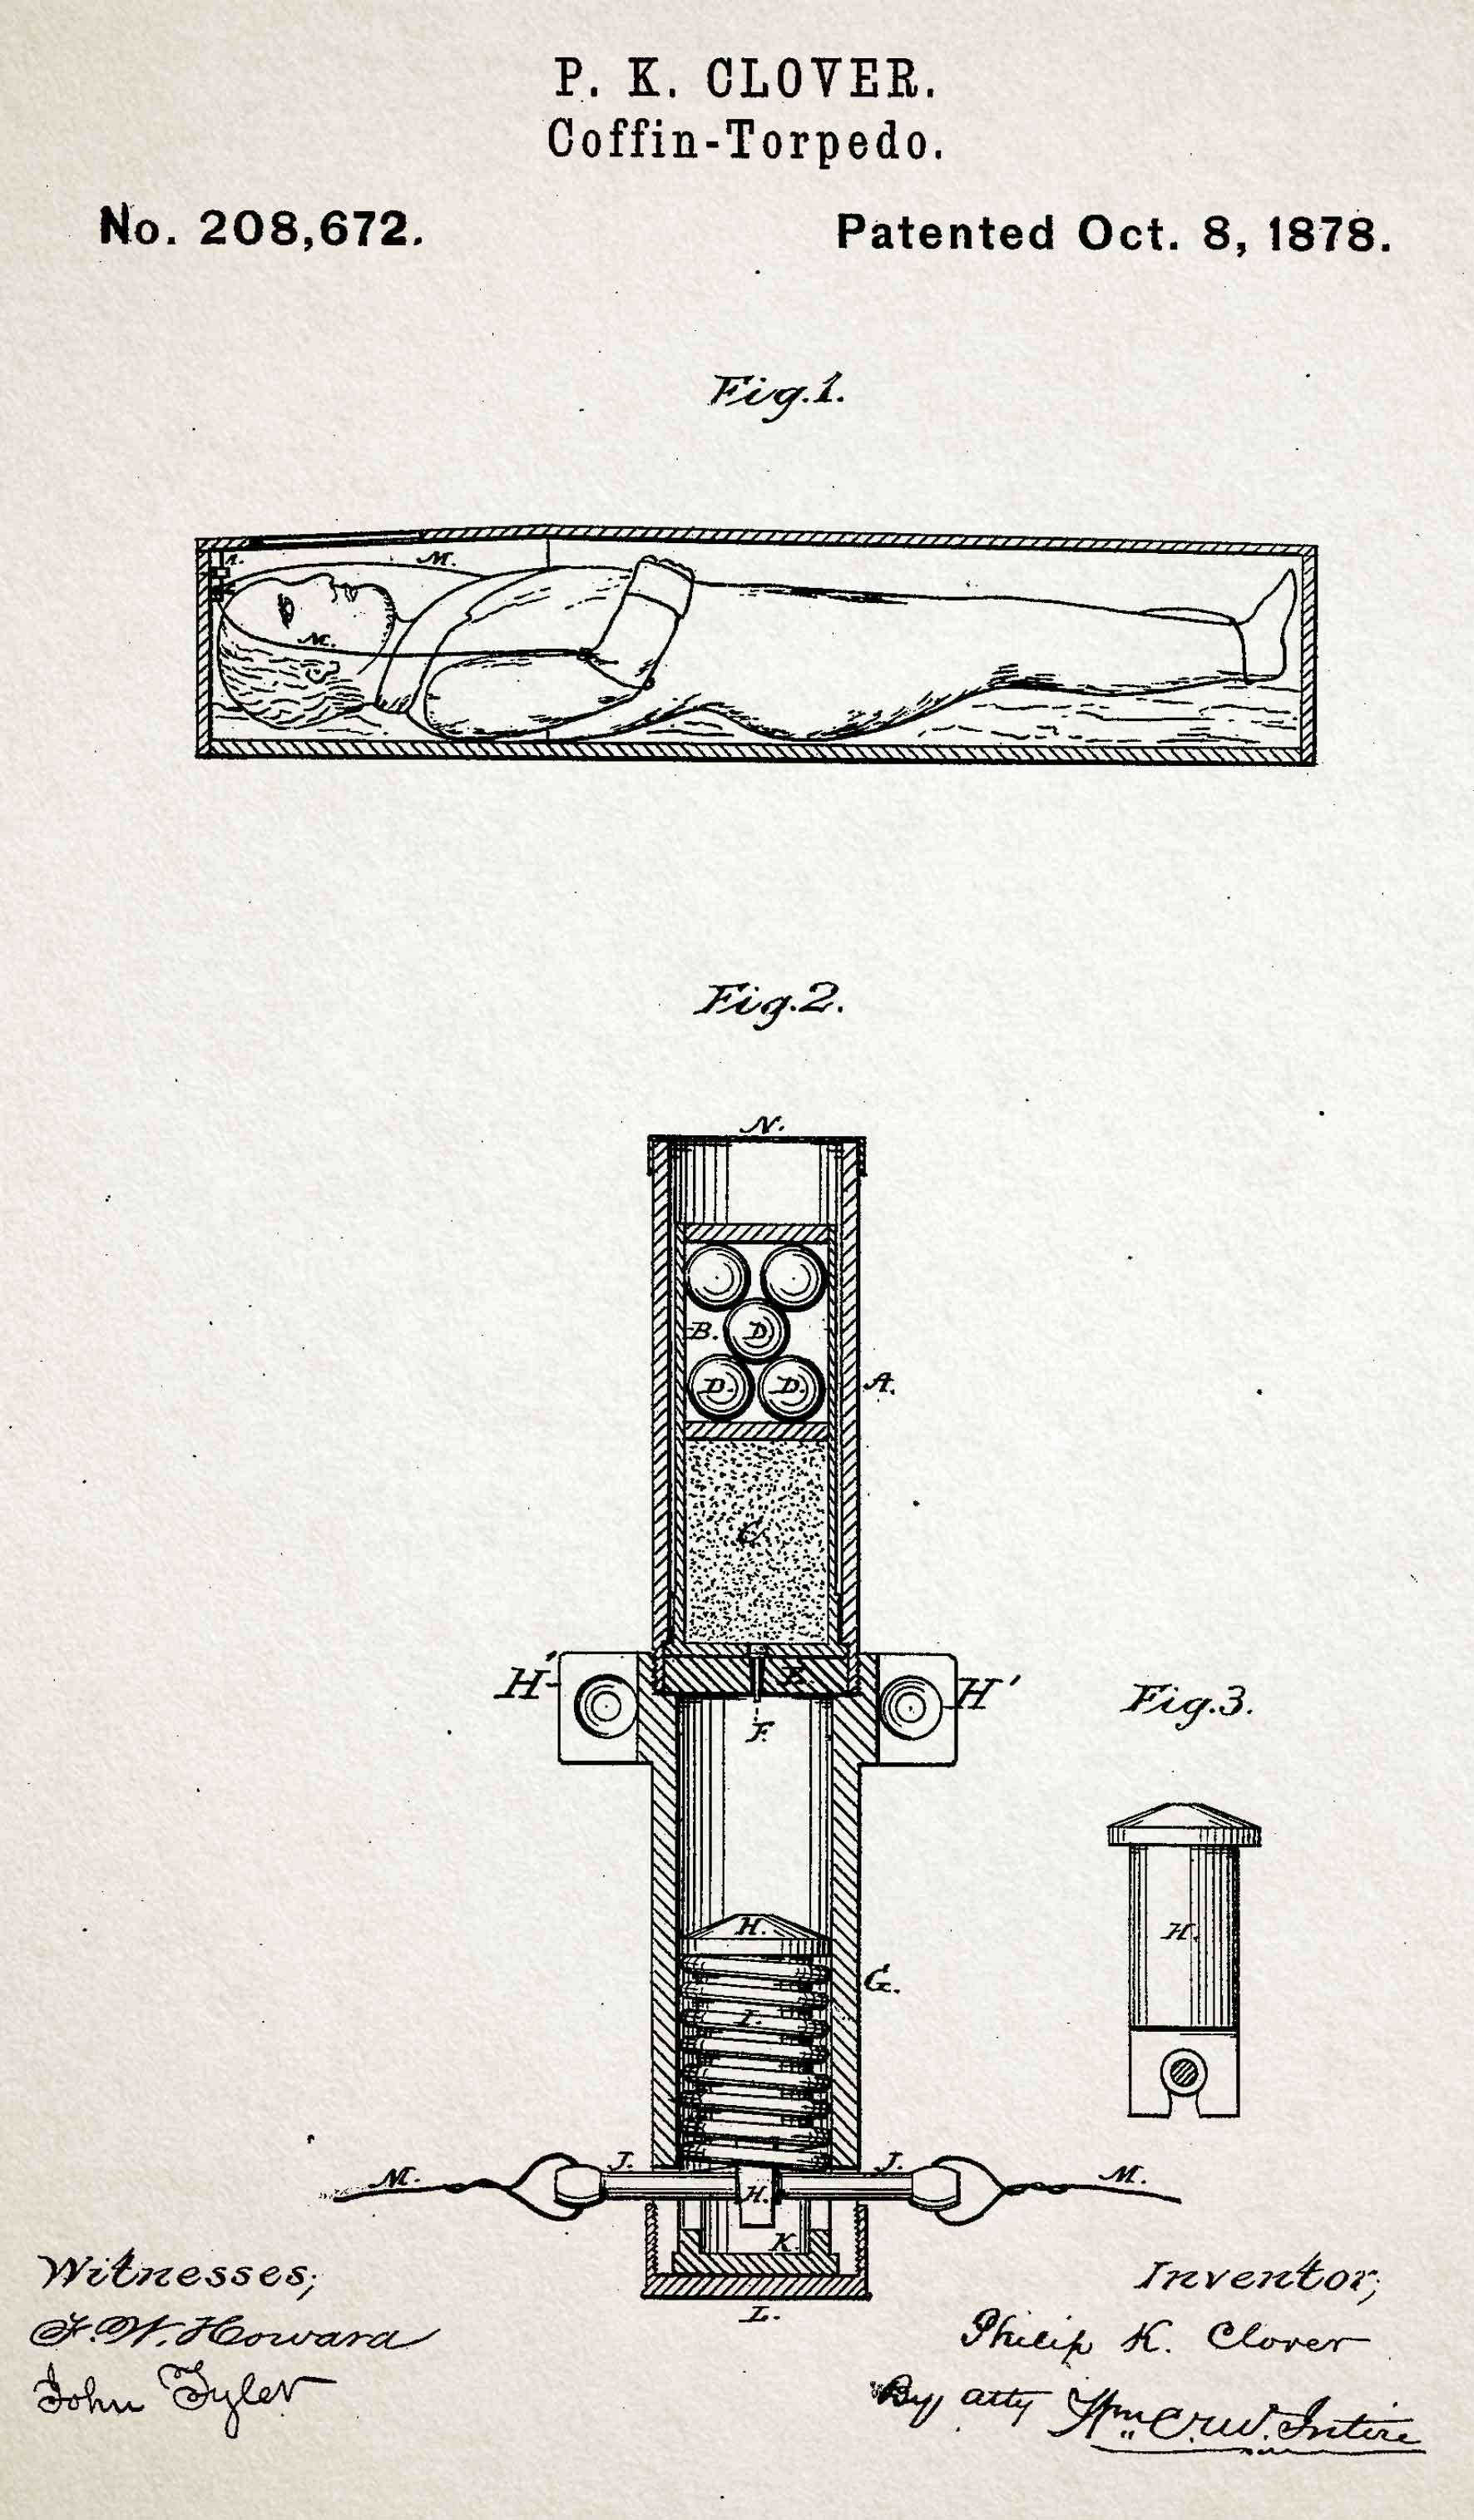 Coffin torpedo patent illustration